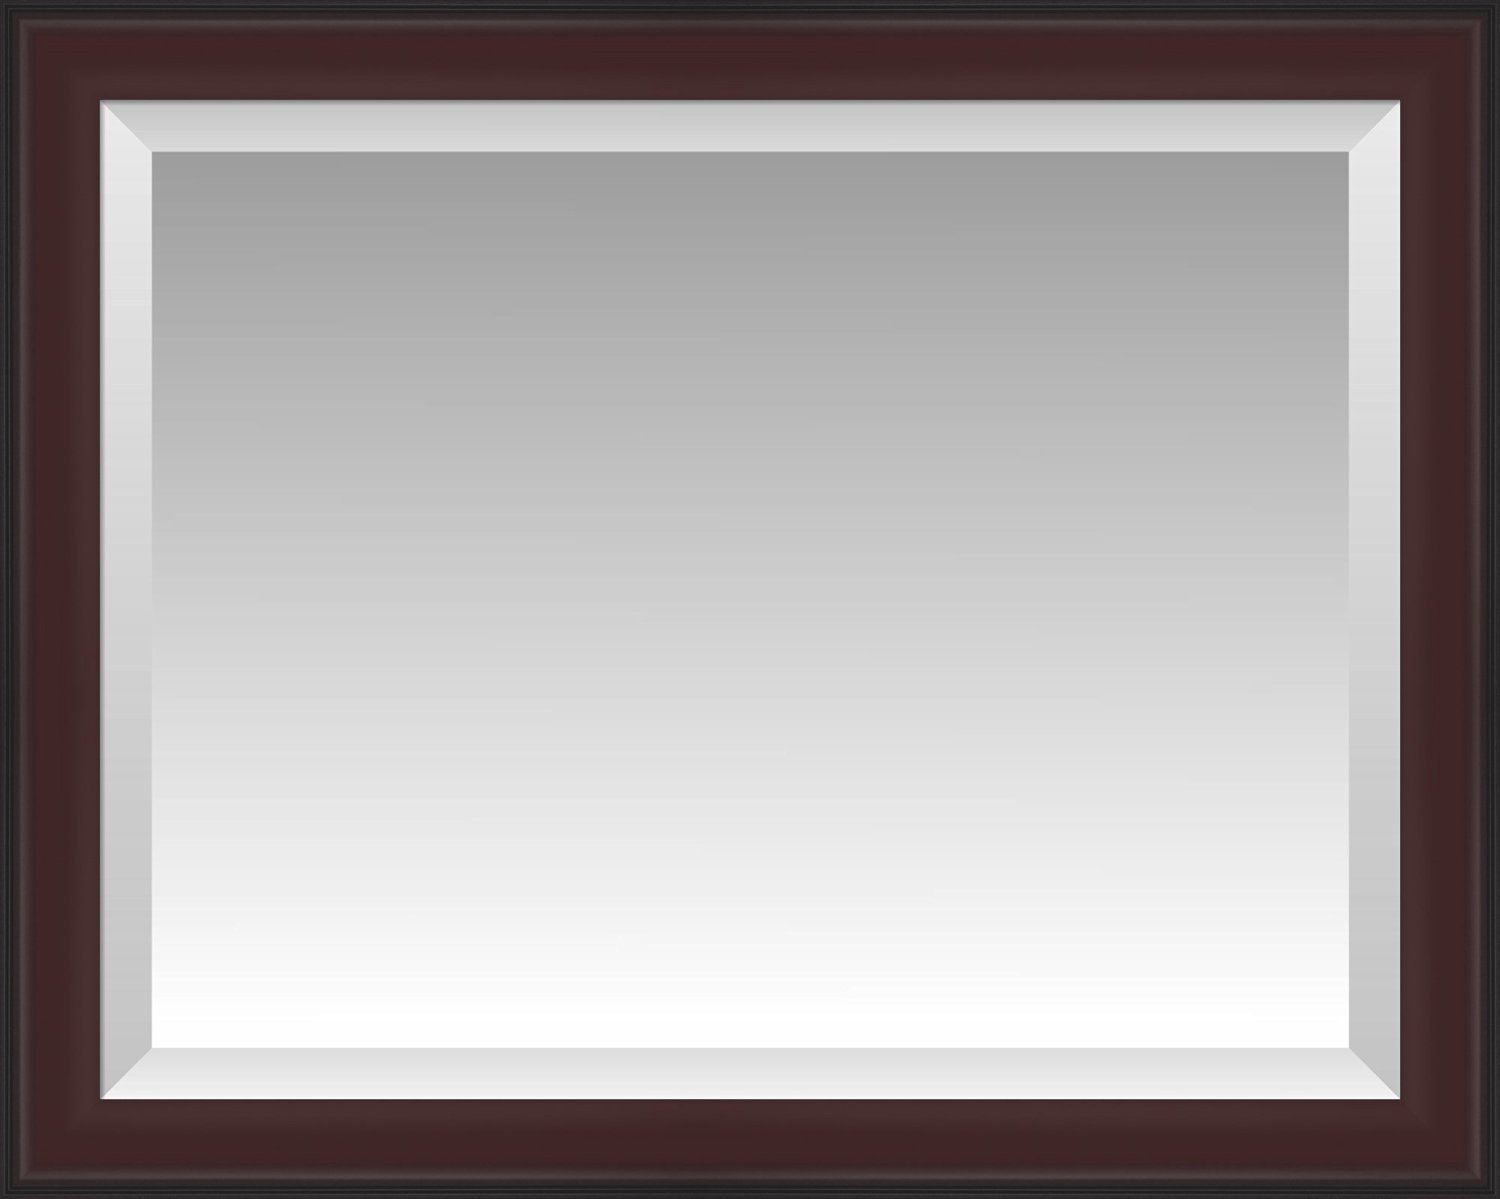 Formal Dark Cherry with Black Outer Edge Beveled Wall Mirror, Size 33.5 X 27.5